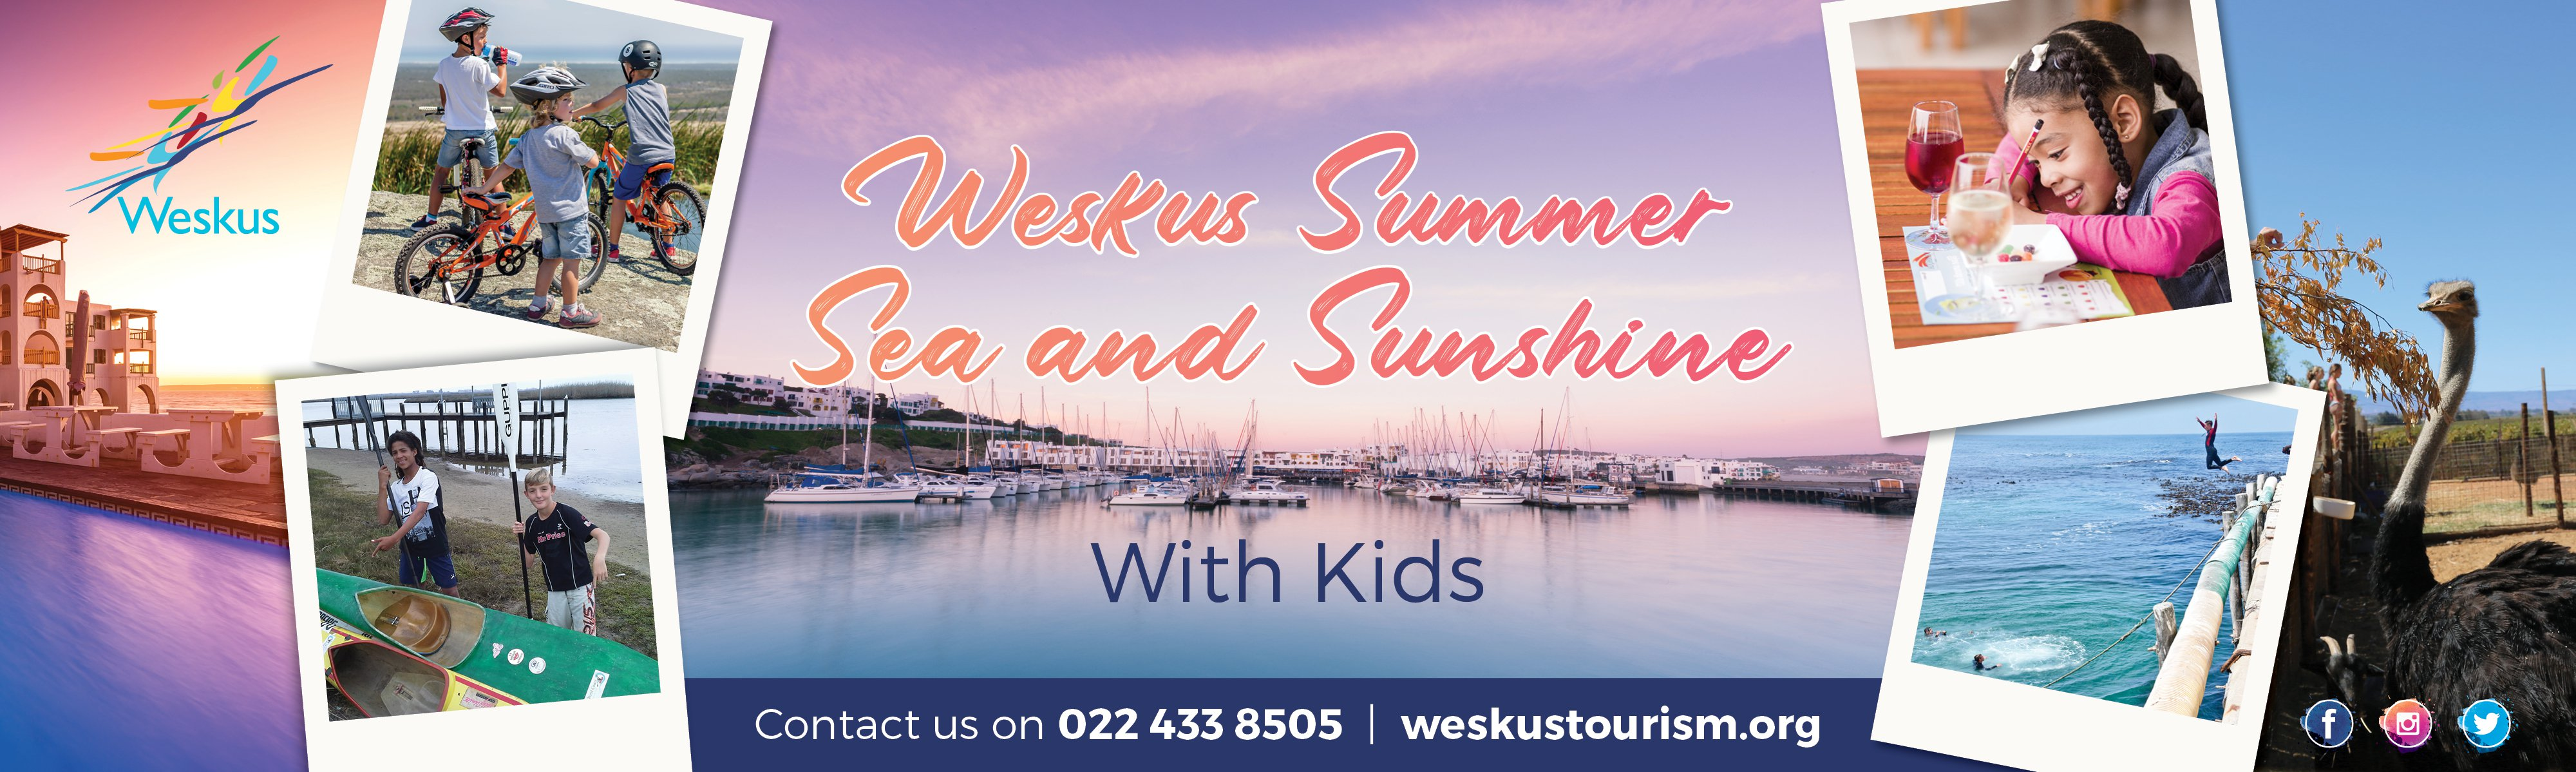 Weskus summer, sea and sunshine- with kids!